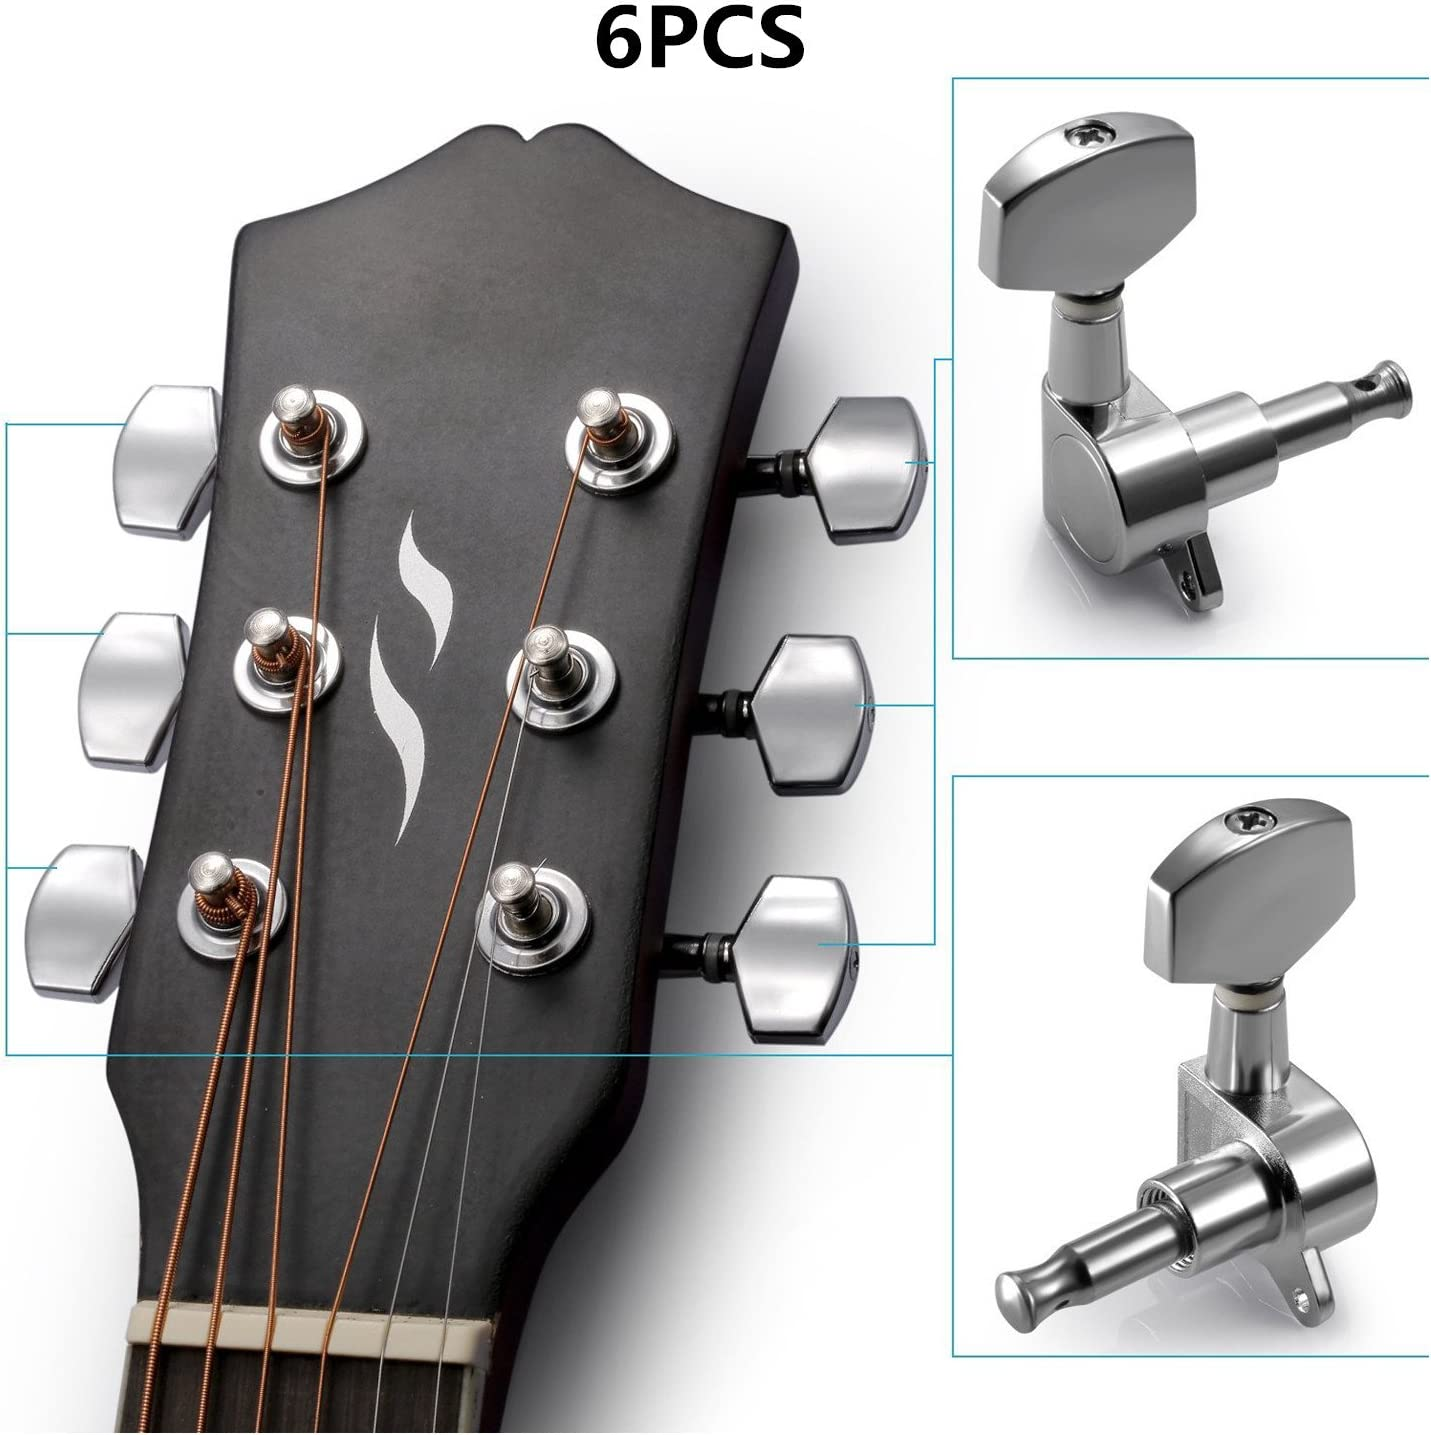 KLJKUJ 6 Pcs Silver Acoustic Guitar Machine Heads Knobs Guitar String Tuning Peg Tuner 3 for Left + 3 for Right